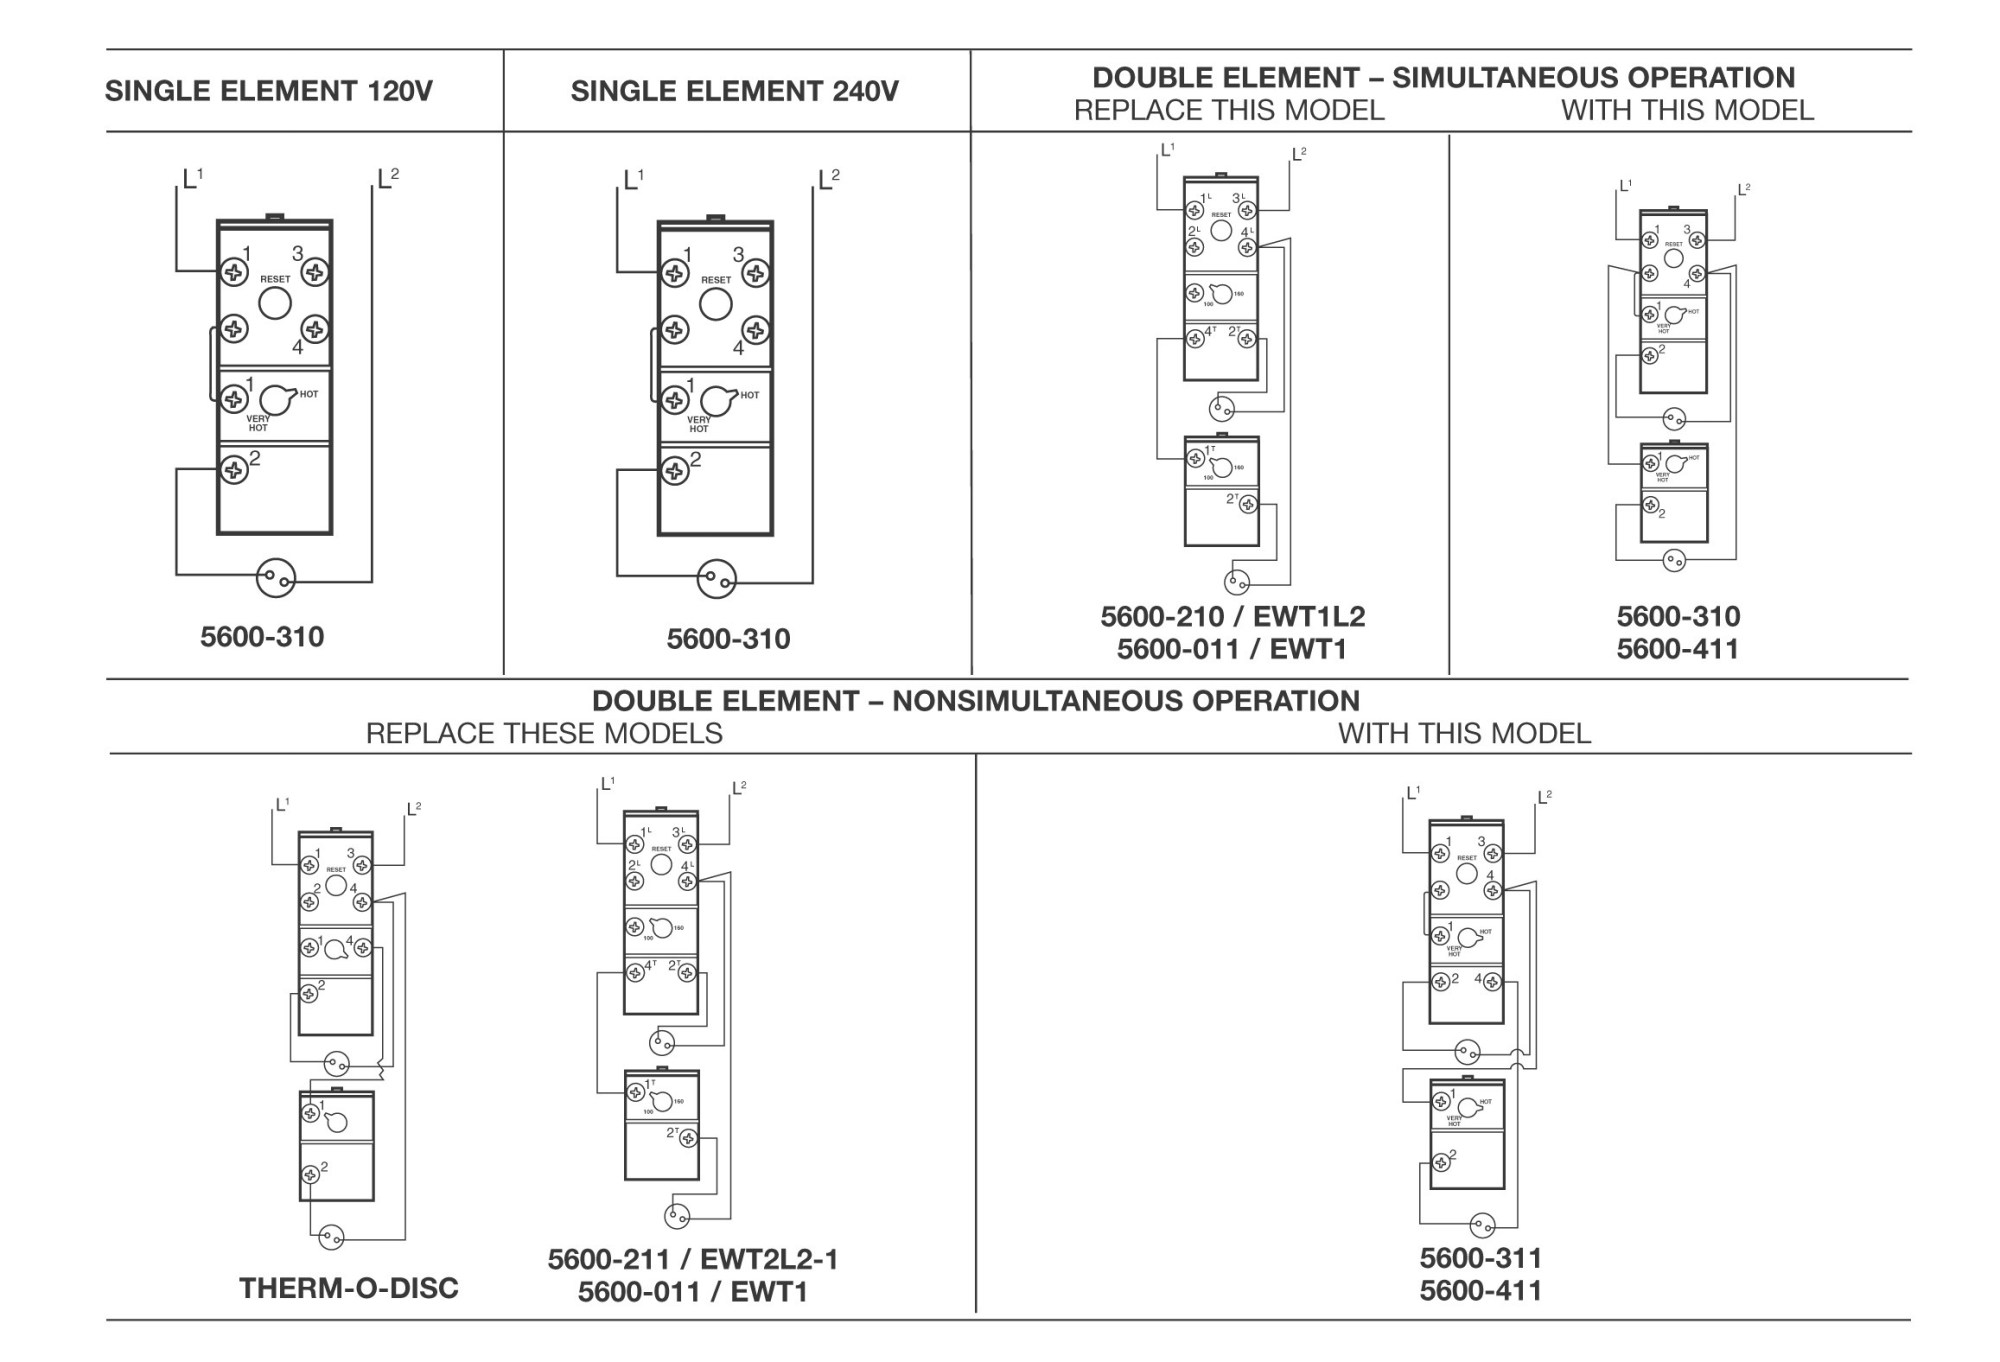 hight resolution of electric water heater thermostat wiring diagram collection thermostat wiring diagram unique electric water heater thermostat